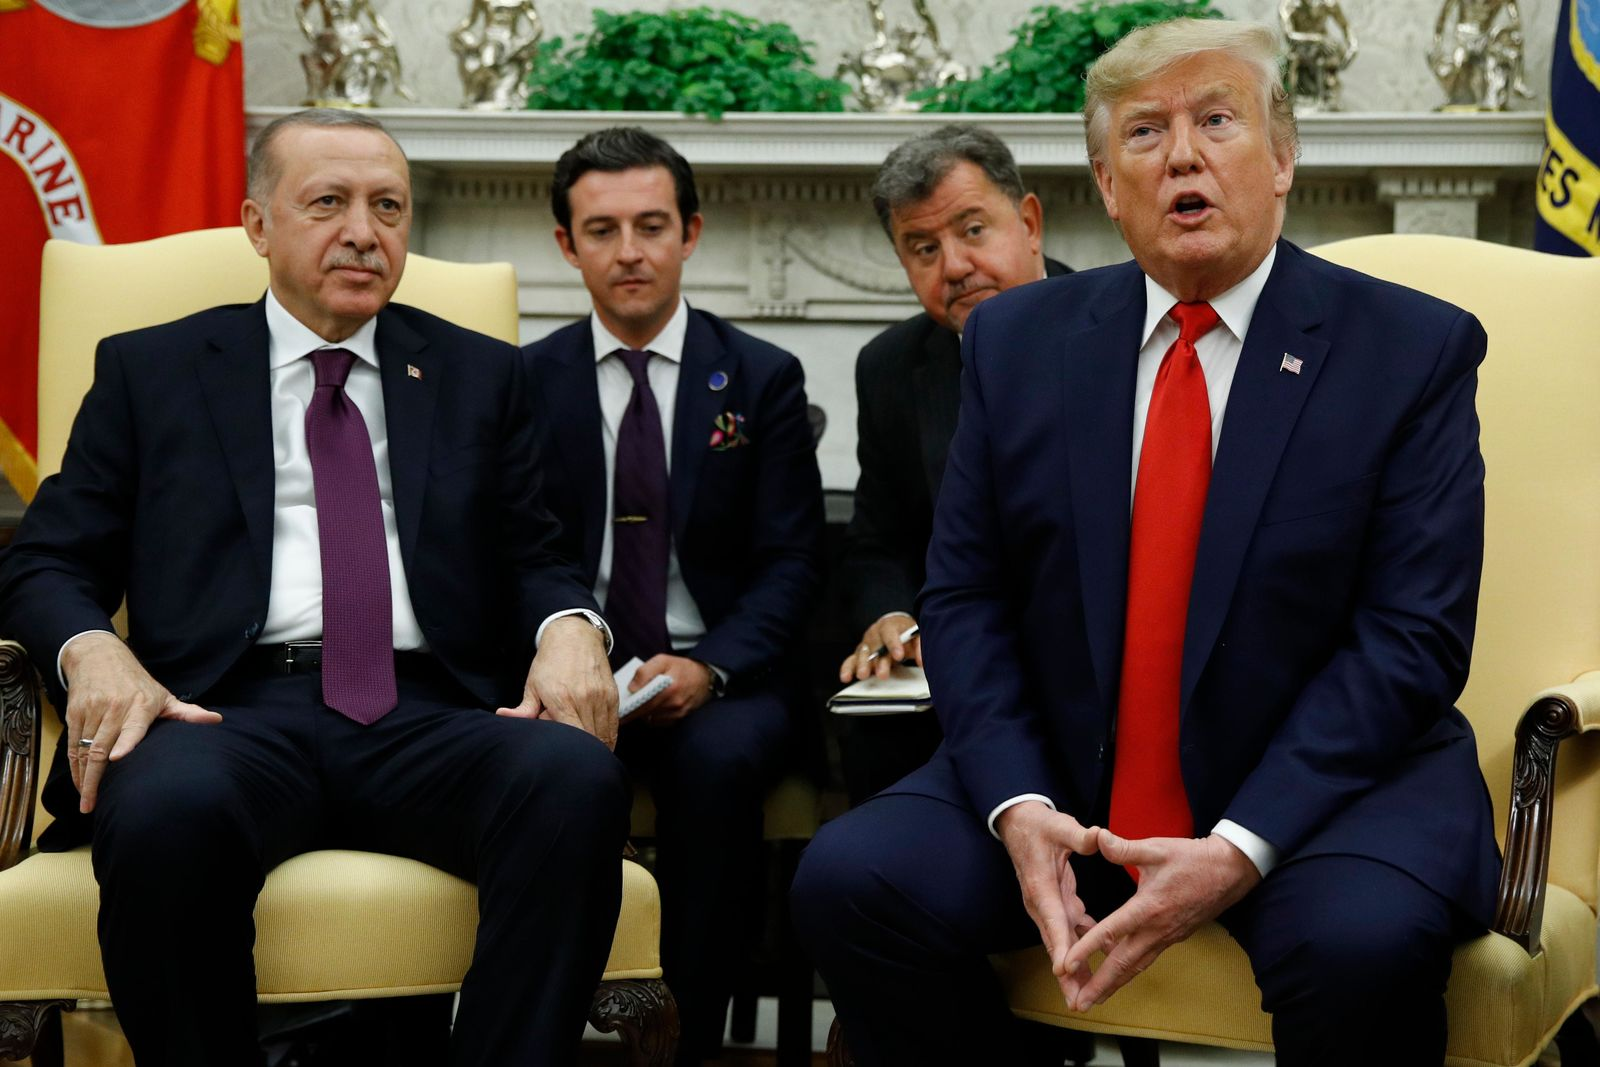 President Donald Trump and Turkish President Recep Tayyip Erdogan meet in the Oval Office with Republican senators at the White House Wednesday, Nov. 13, 2019, in Washington. (AP Photo/Patrick Semansky)